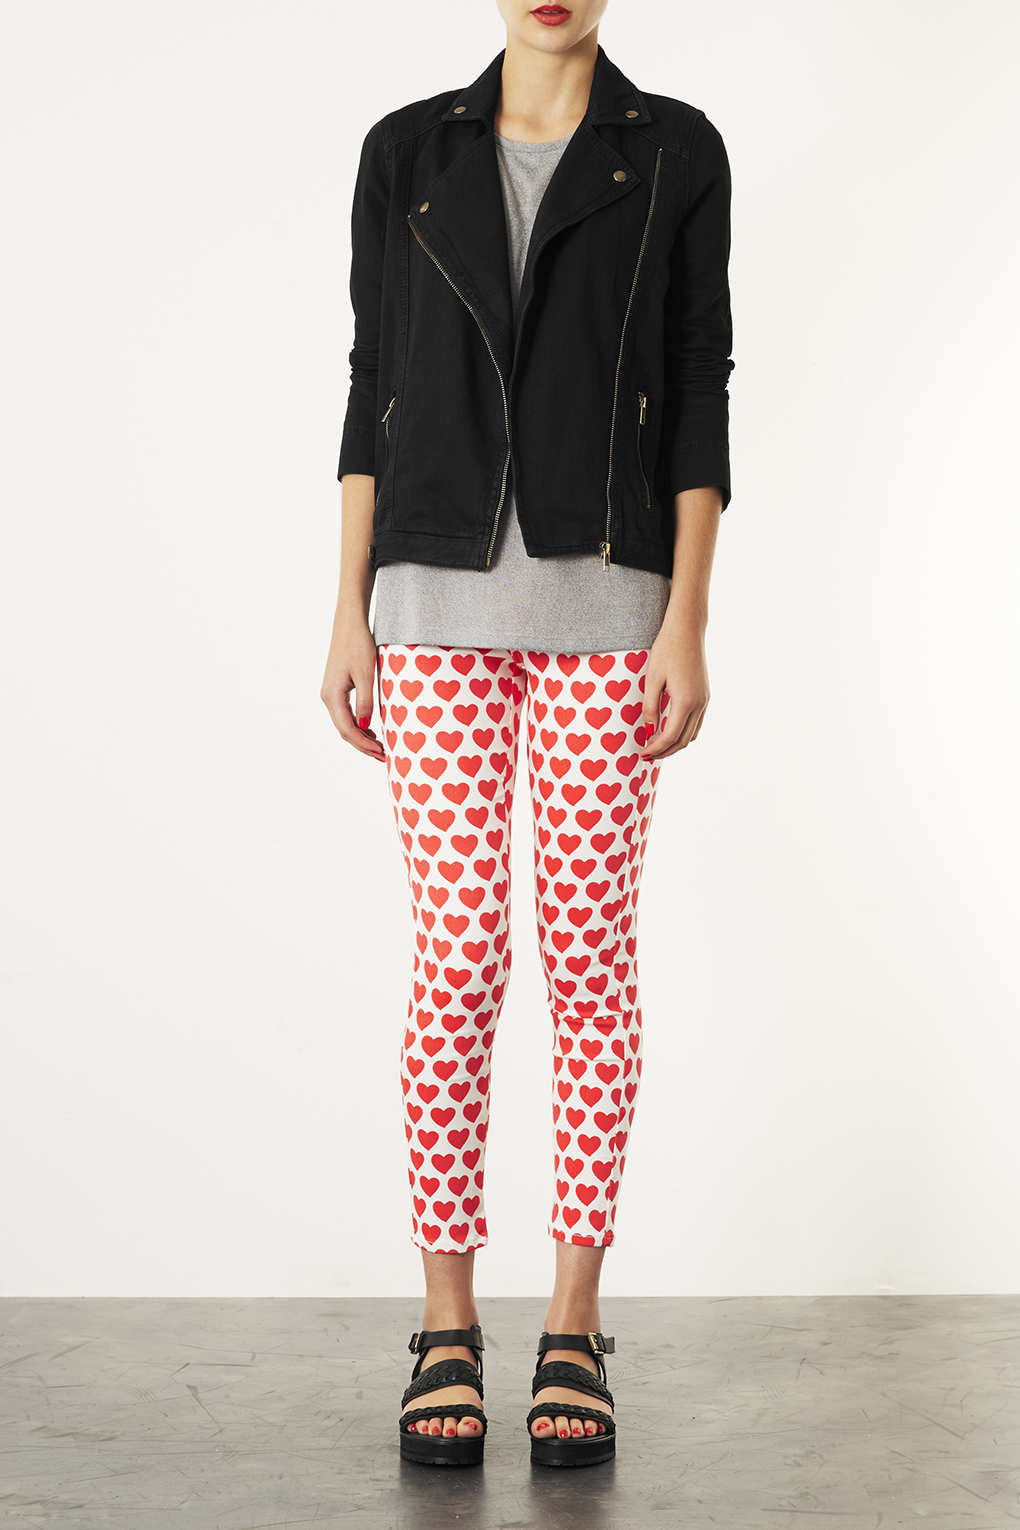 TOPSHOP Moto Heart Print Joni Super High Waisted Jeans in Red